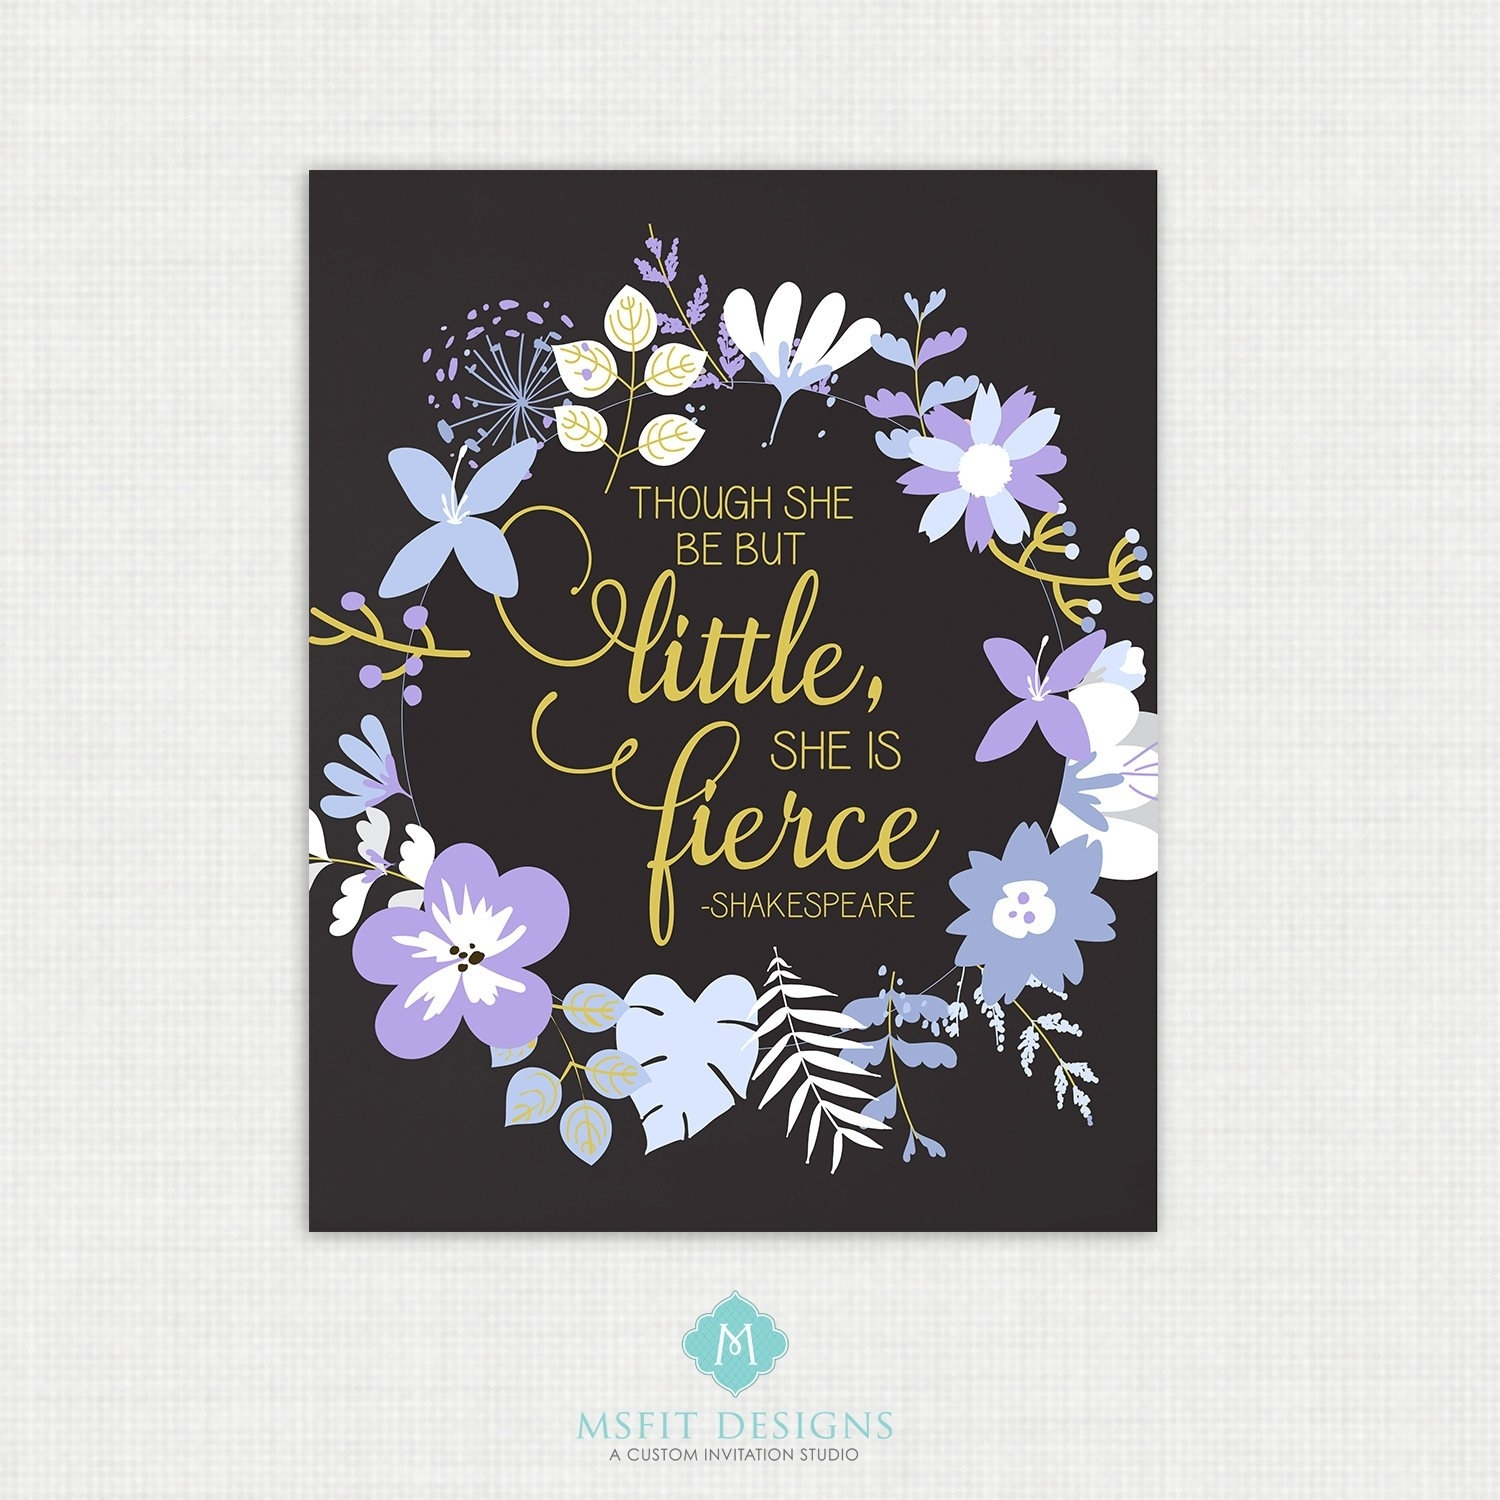 Printable Quote Though She Be But Little She Is Fierce, Wall Art Pertaining To Newest Though She Be But Little She Is Fierce Wall Art (Gallery 6 of 20)